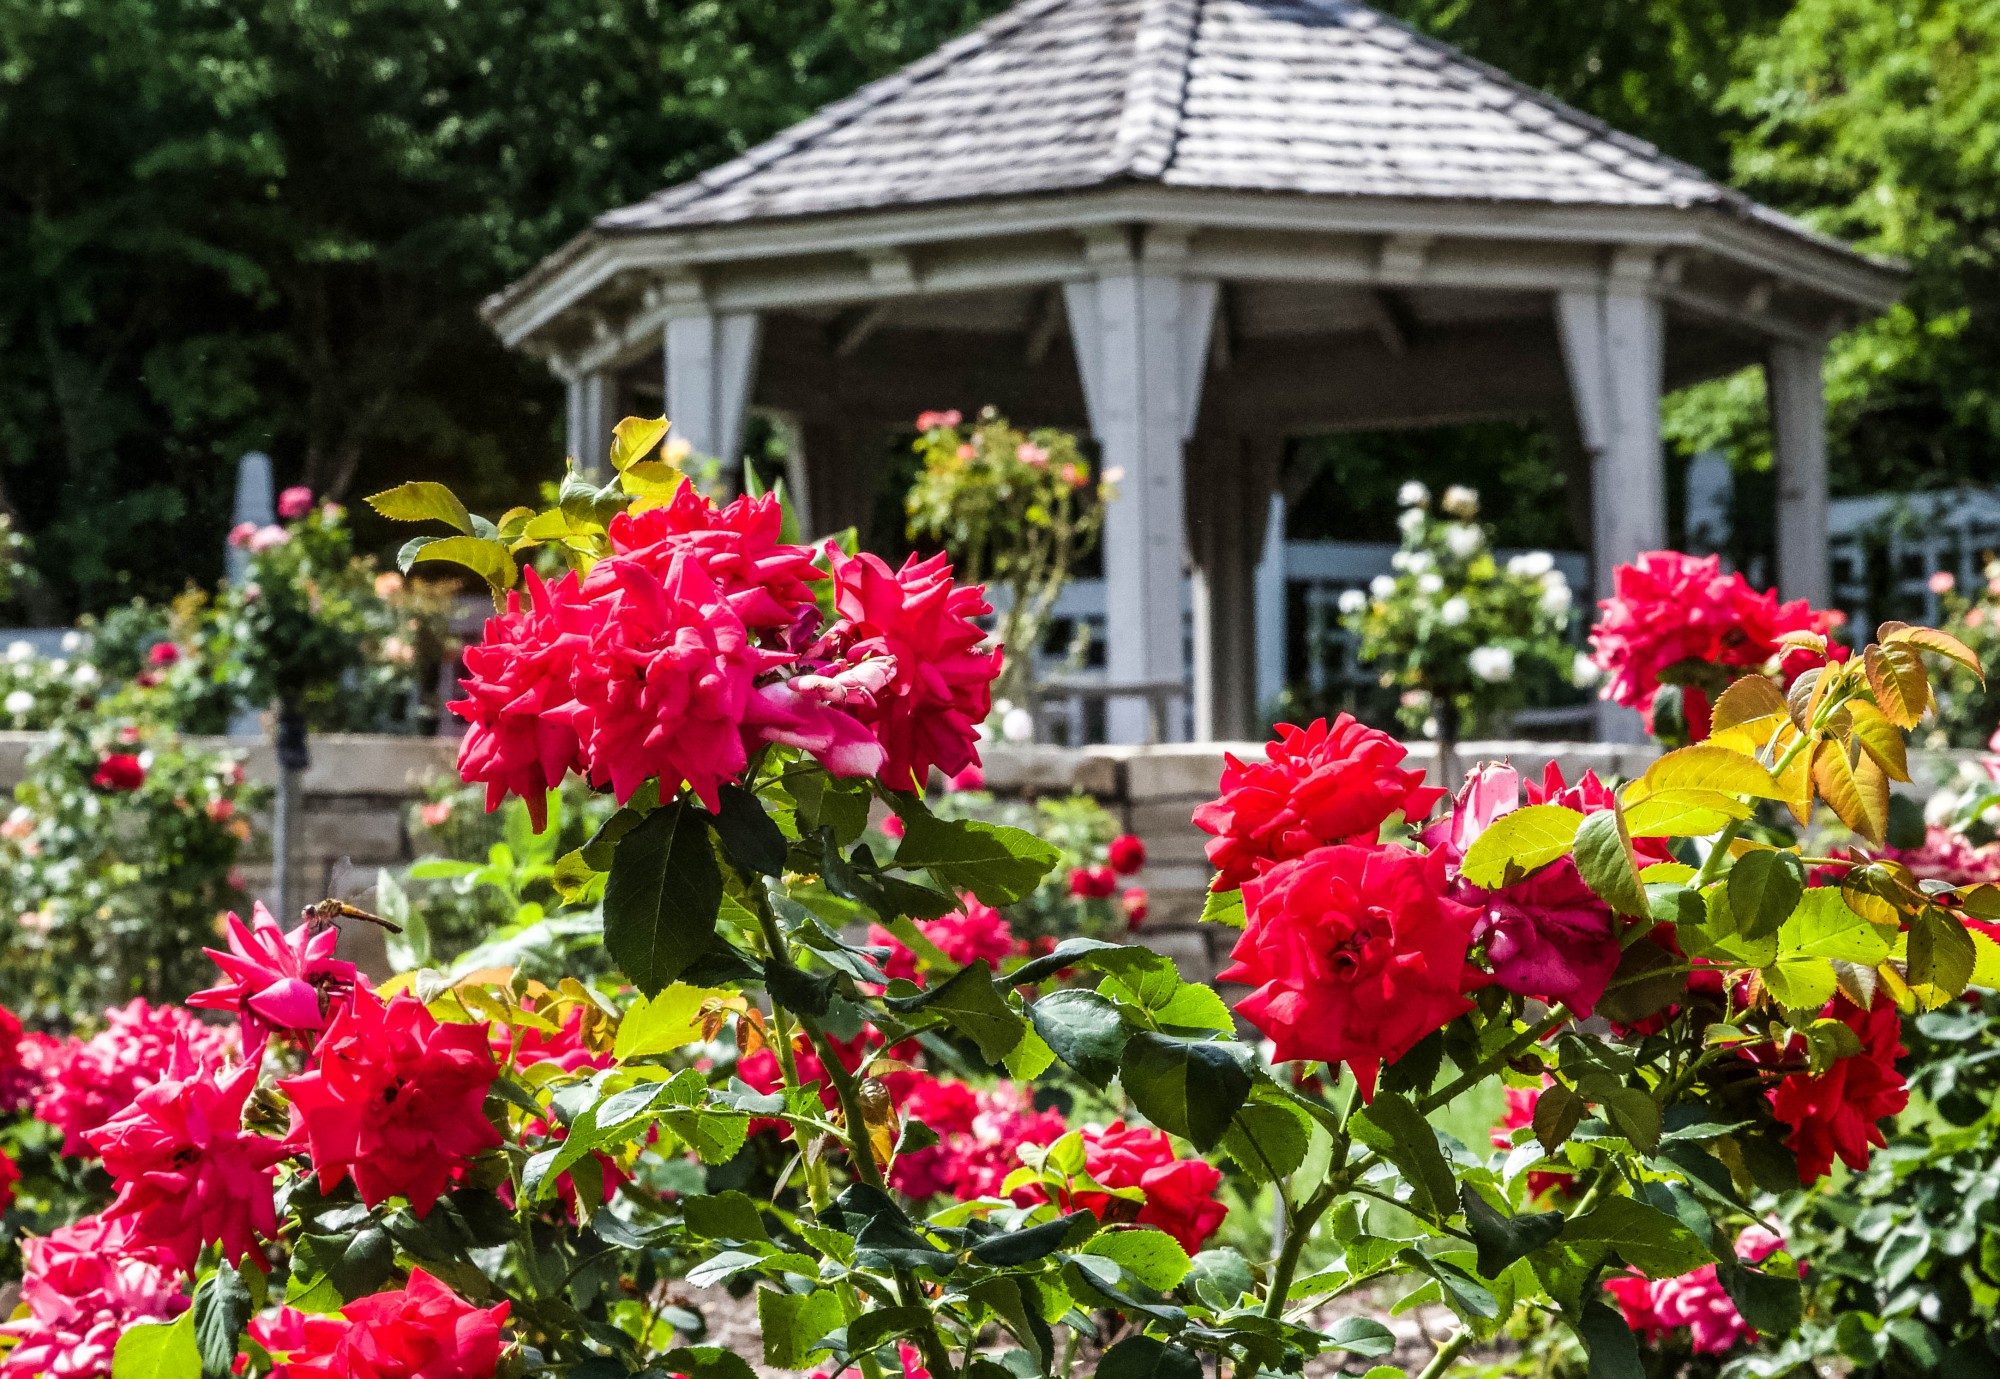 Red roses bloom in the Palma J. Wilson Rose Garden at the Minnesota Landscape Arboretum on Monday, July 13.